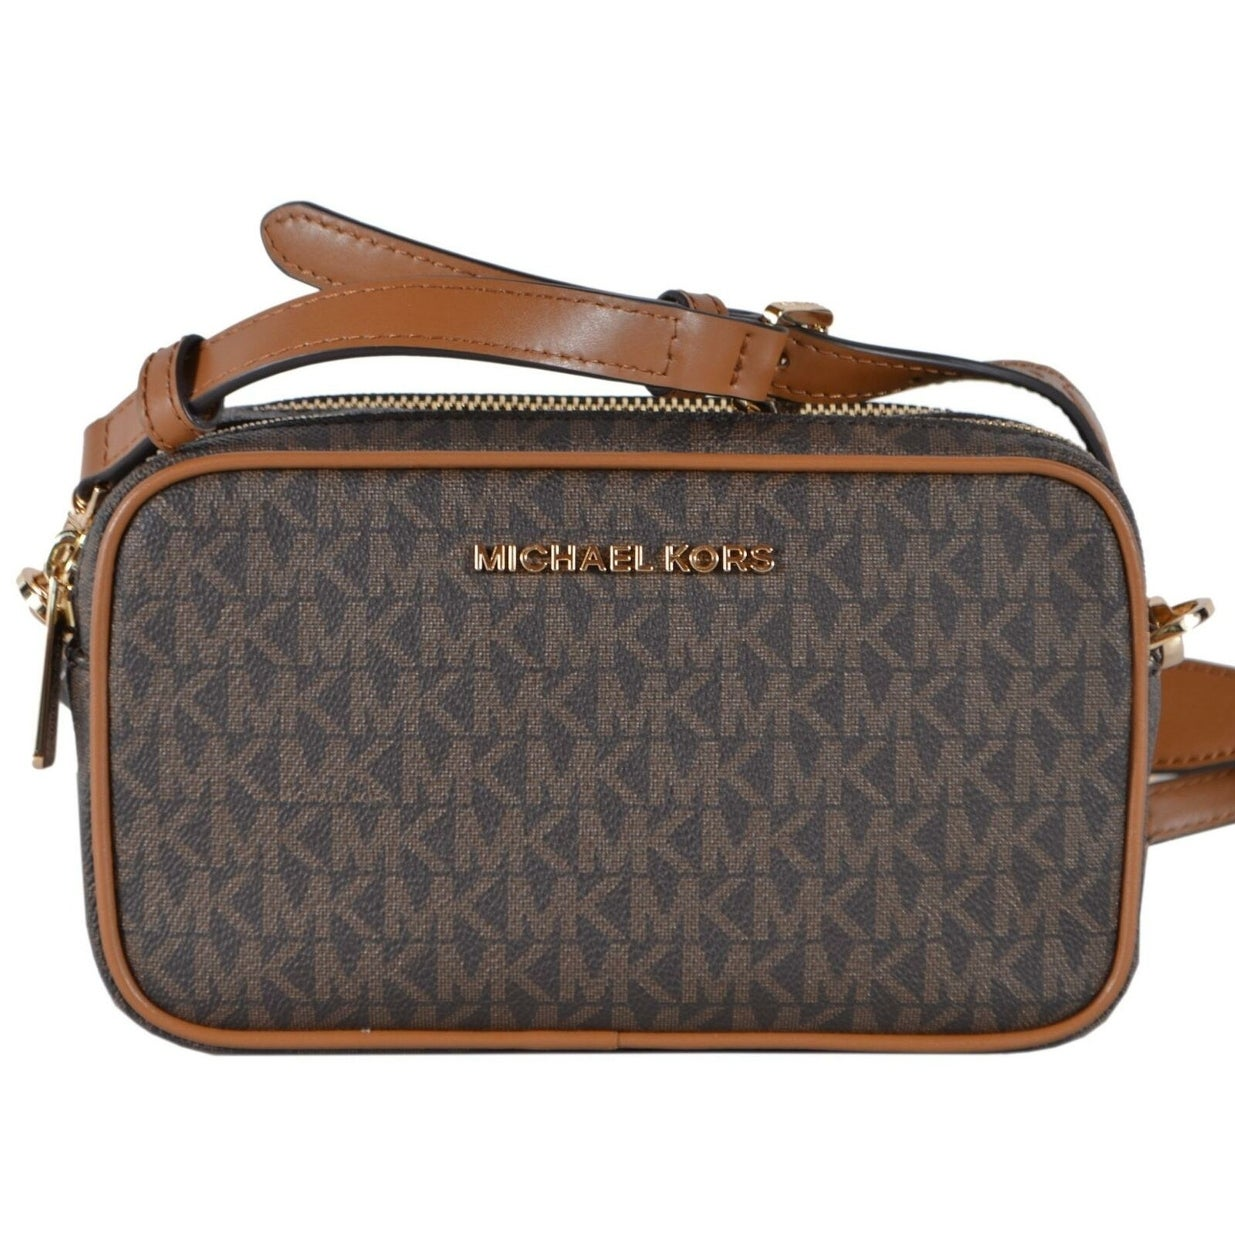 Michael Kors Brown Coated Canvas